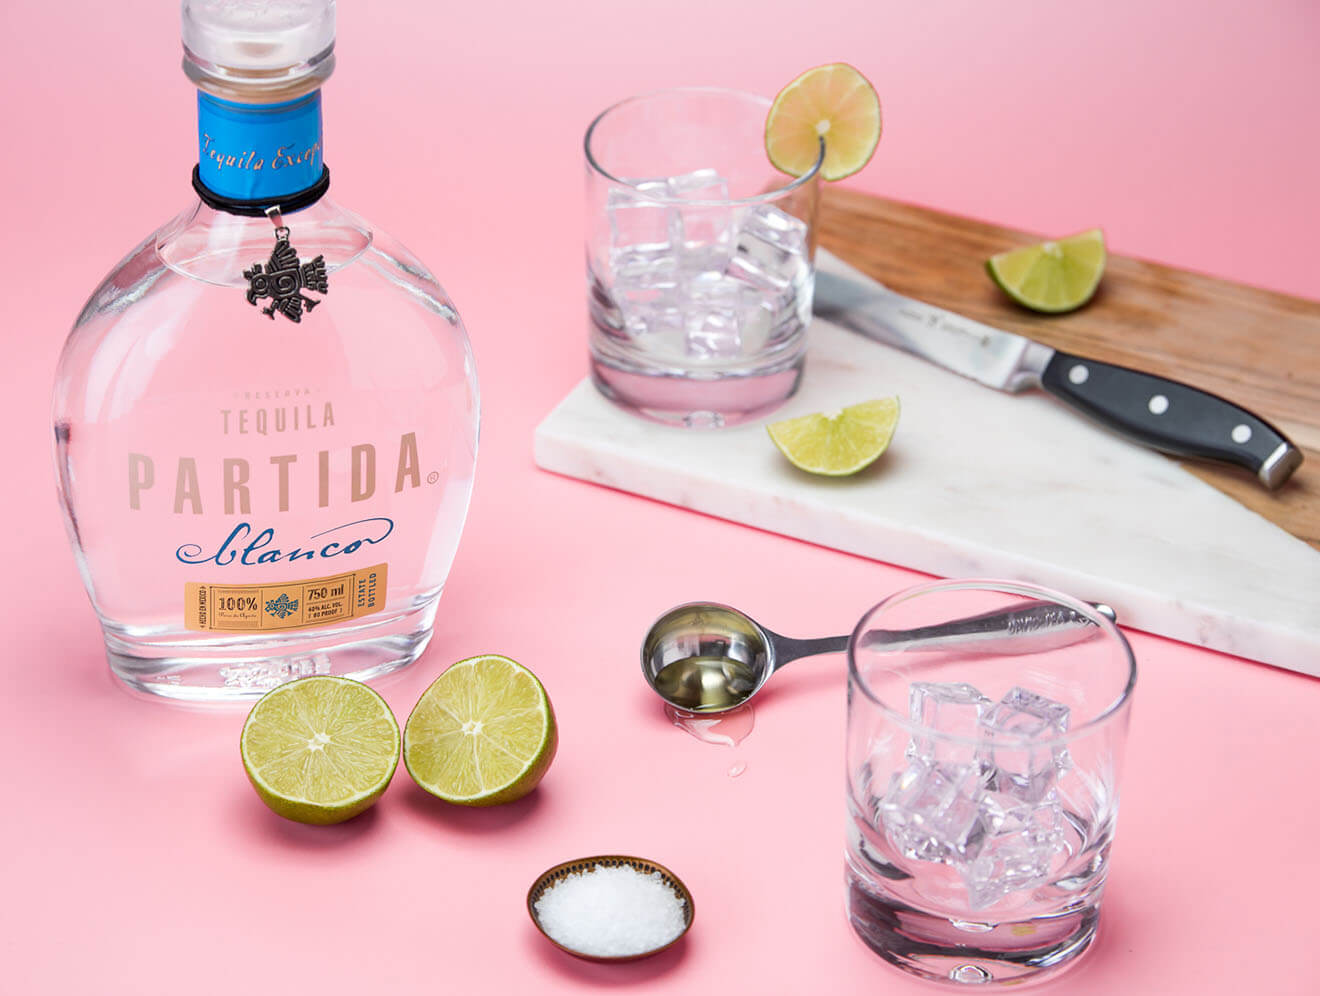 Partida Tequila, bottle, garnishes and bar tools, pink background